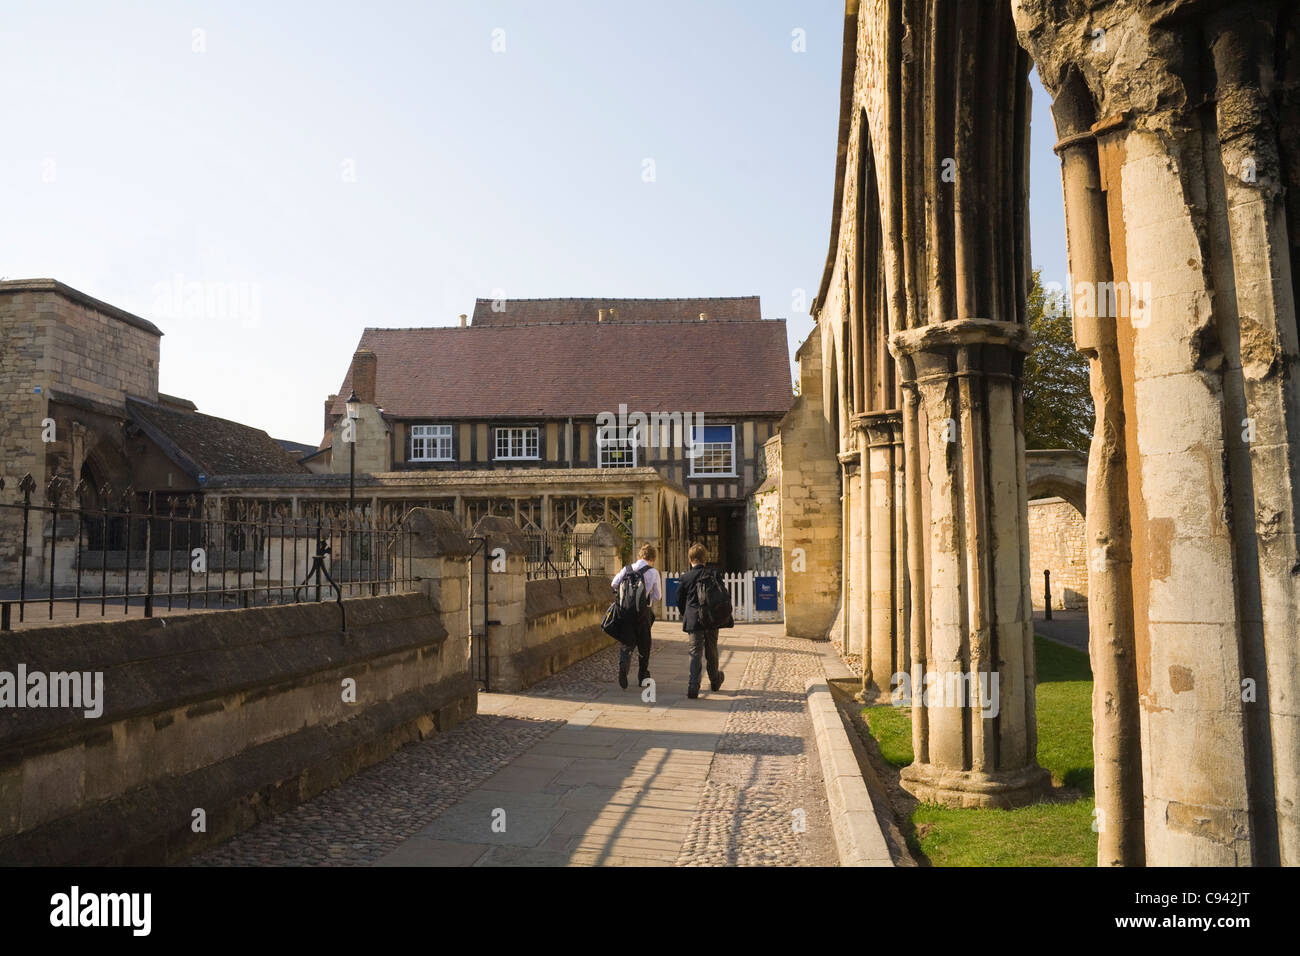 Gloucester England Two Kings School pupils walking past the Infirmary Arches to medieval building - Stock Image